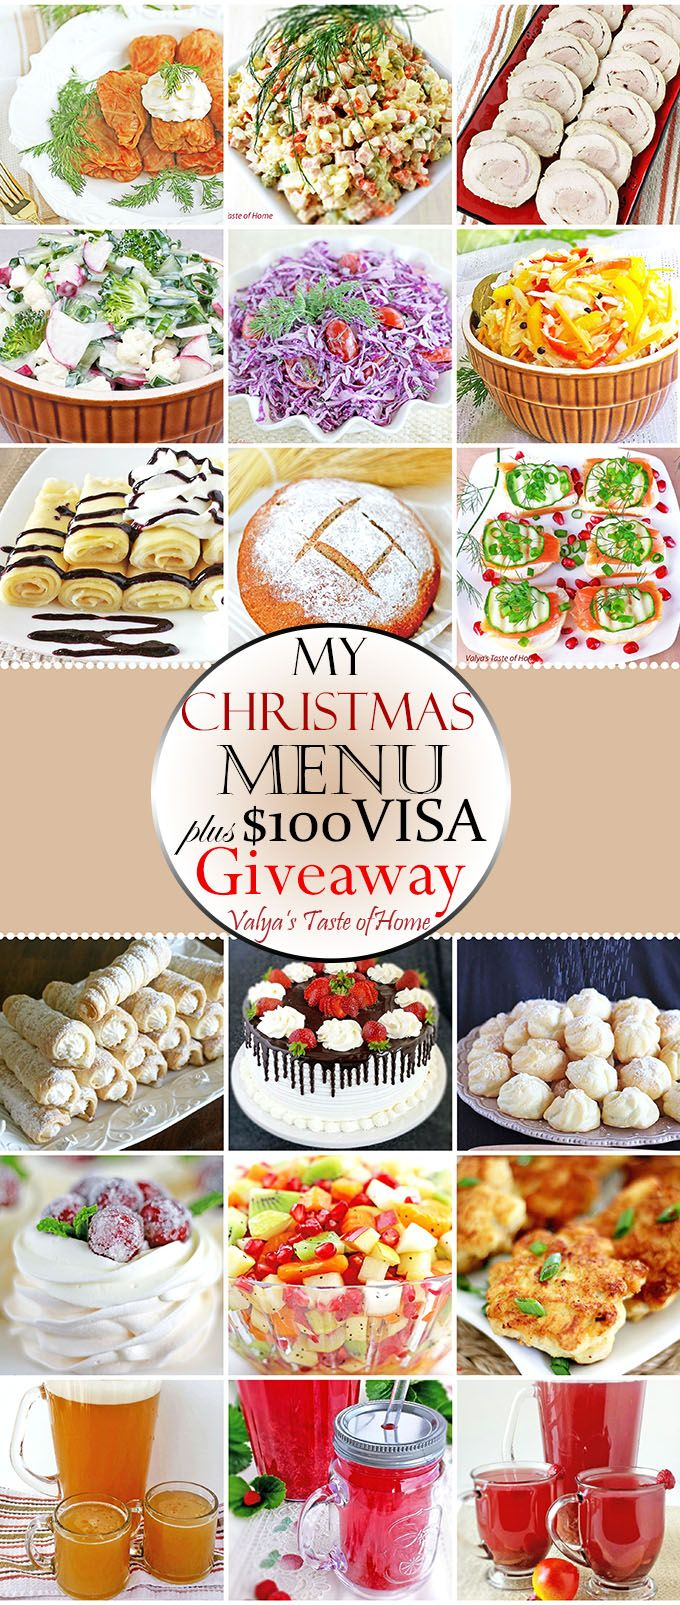 In today's post you will find collection of the recipes we usually make for major holidays like Christmas and Ester. Since some of you ask what my Christmas menu is, I am more than happy to share it with you.  At the end of this post you may enter to win $100 VISA Gift Card. You may enter once each day.